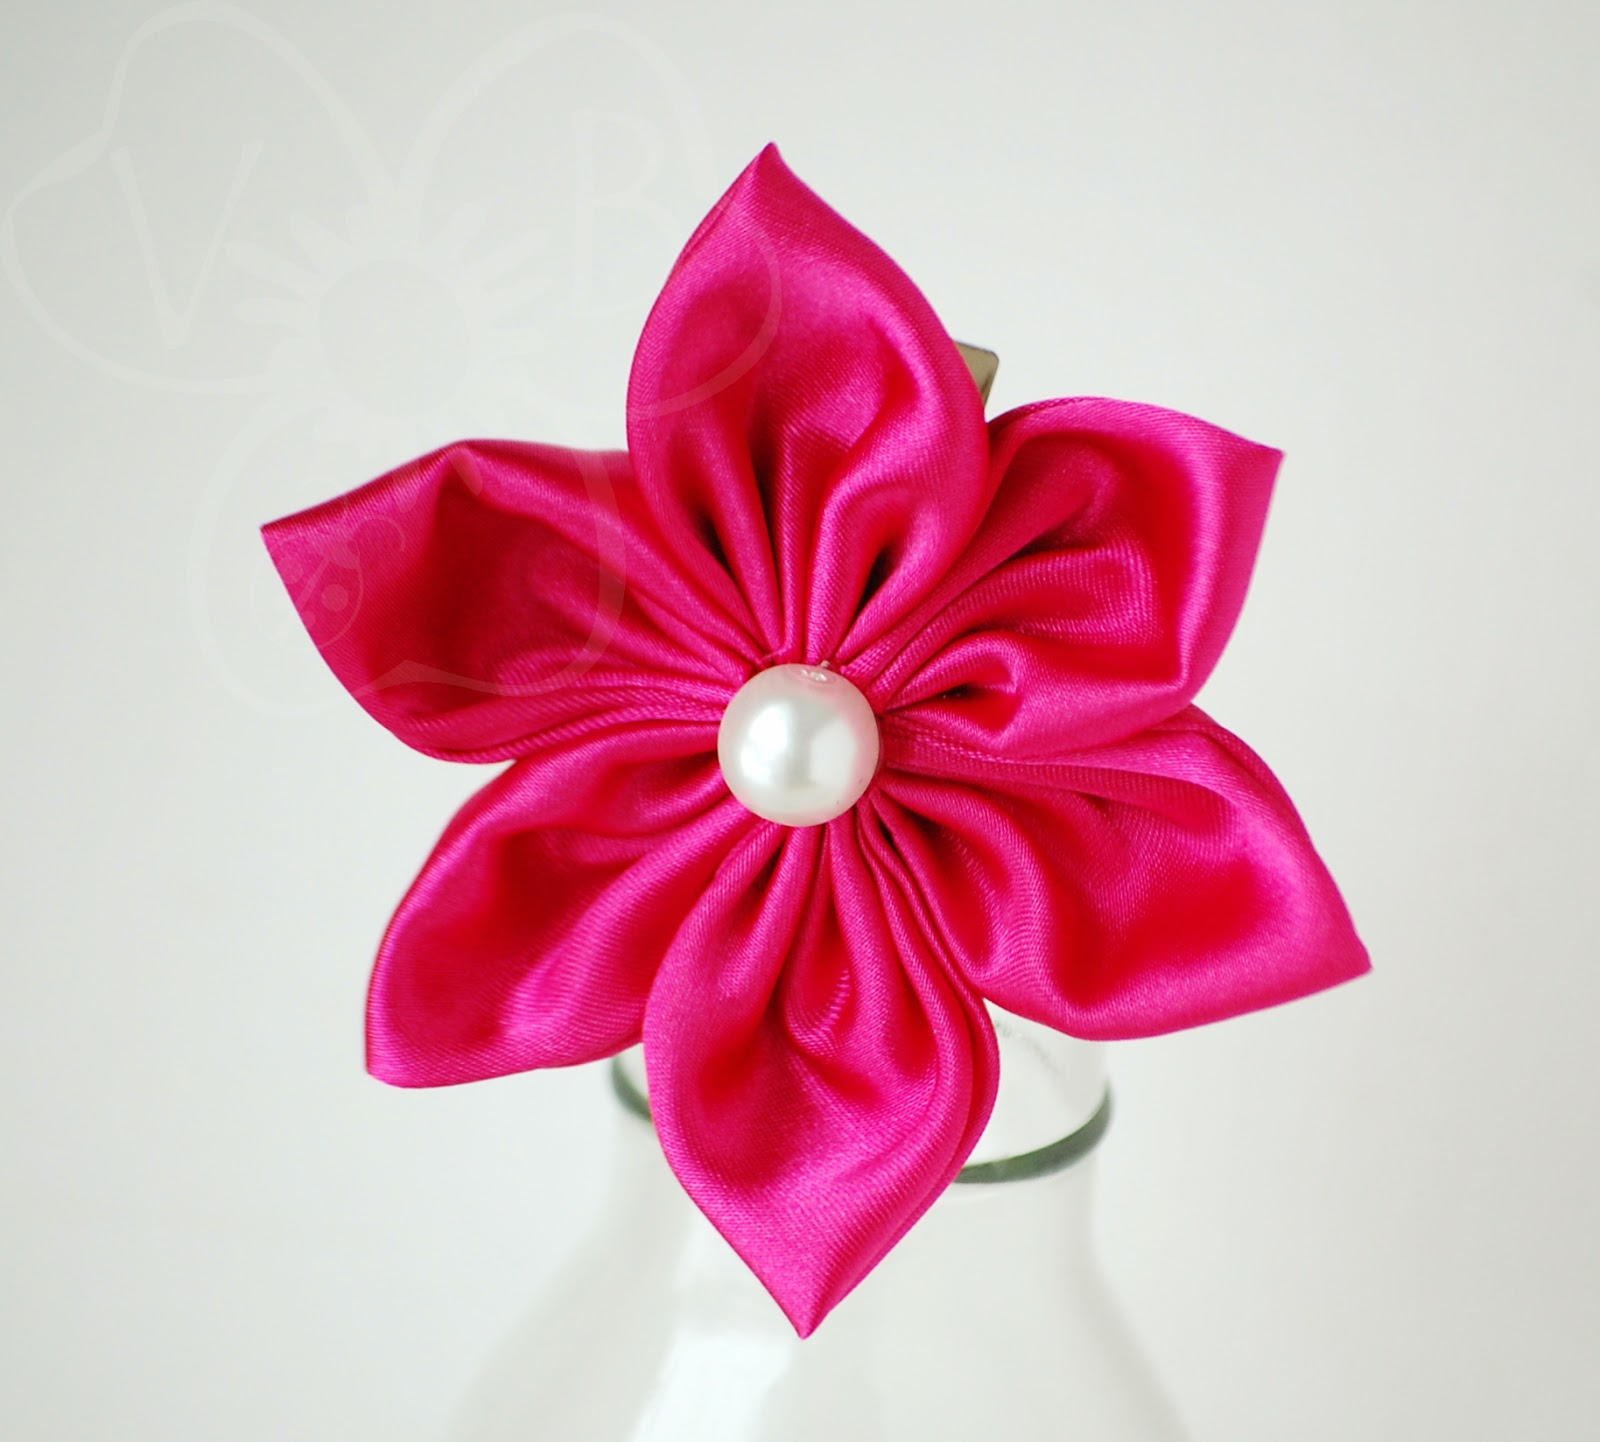 http://violetsbuds.storenvy.com/collections/220228-kanzashi-flowers/products/5551336-shiny-pomegranate-kanzashi-flower-clip